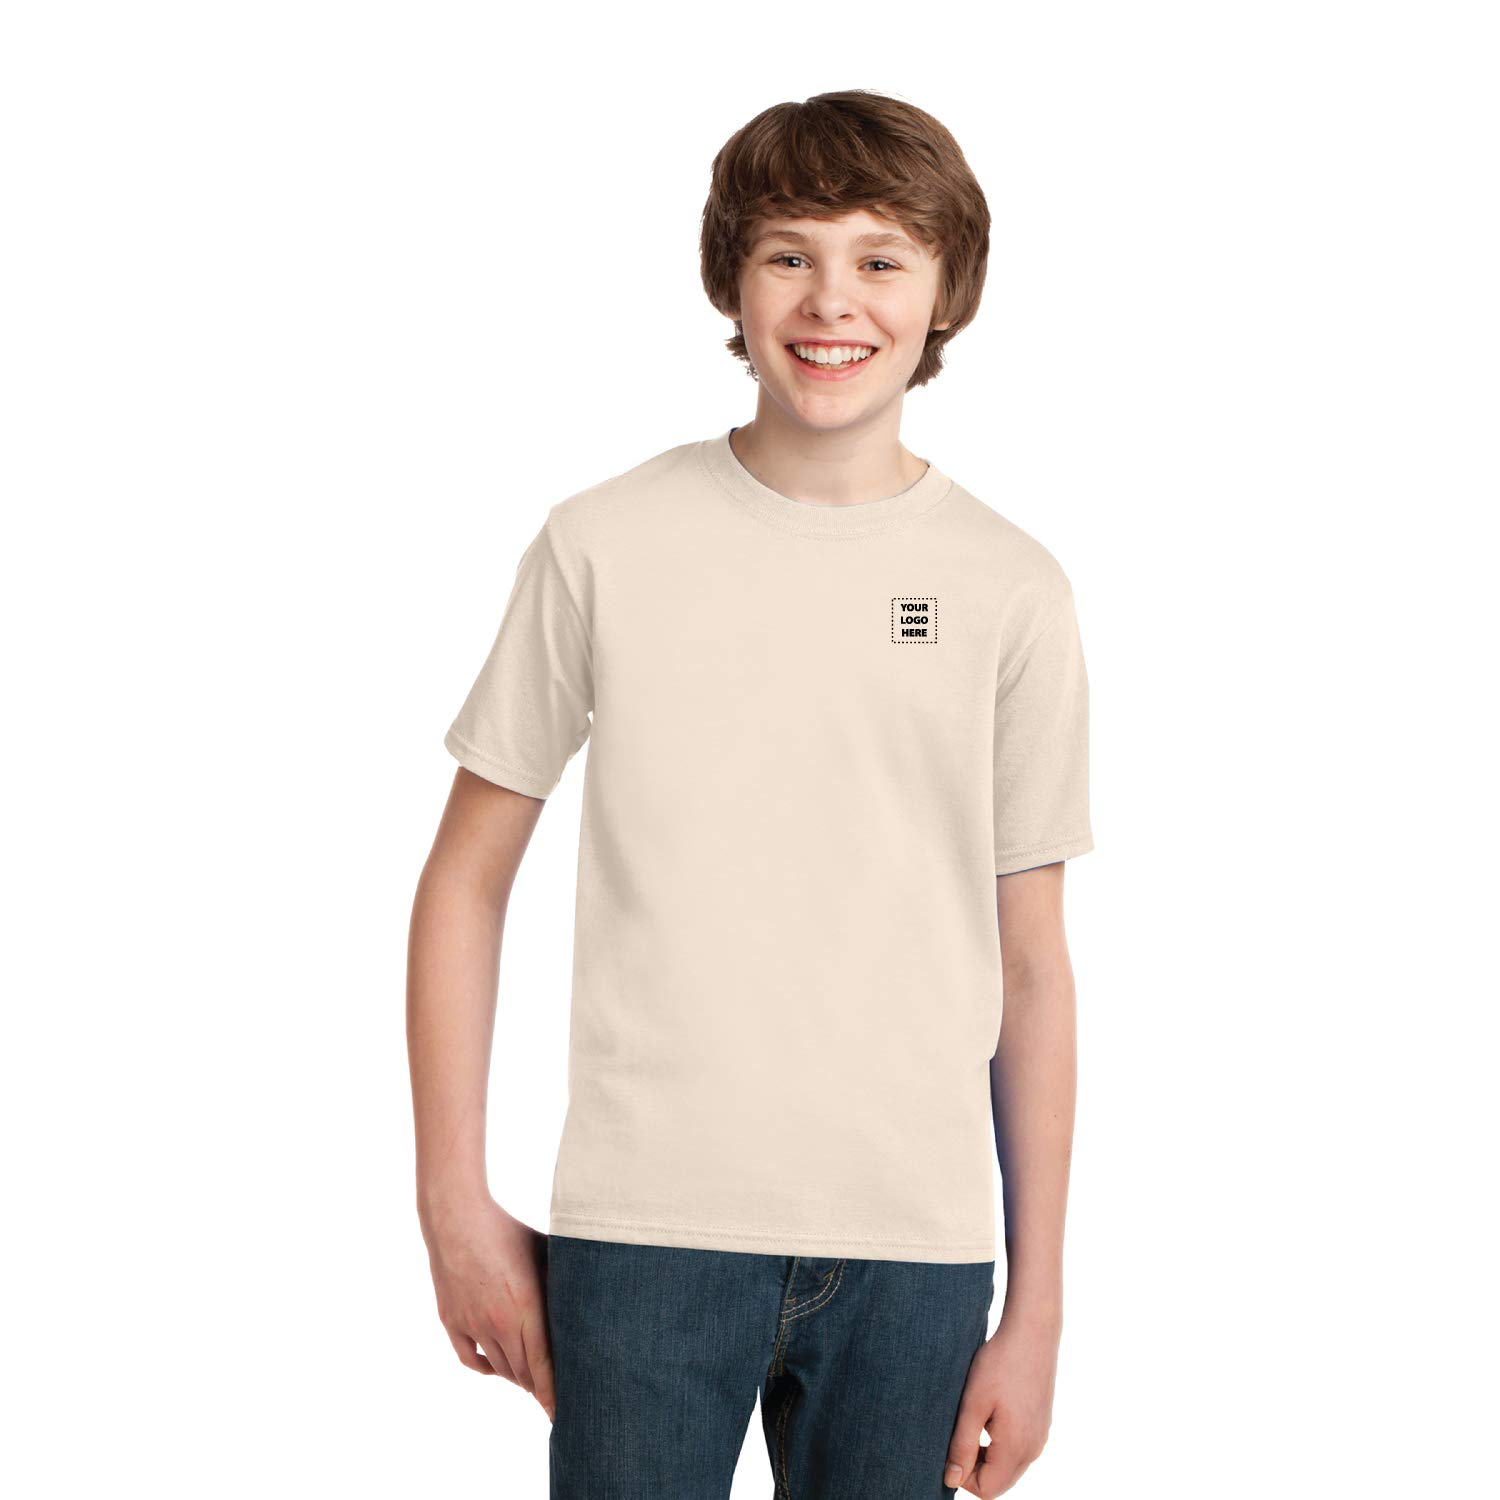 Youth Essential Tee - 24 Qty - 7.84 Each - Promotional Tee with Your Custom Logo Bulk